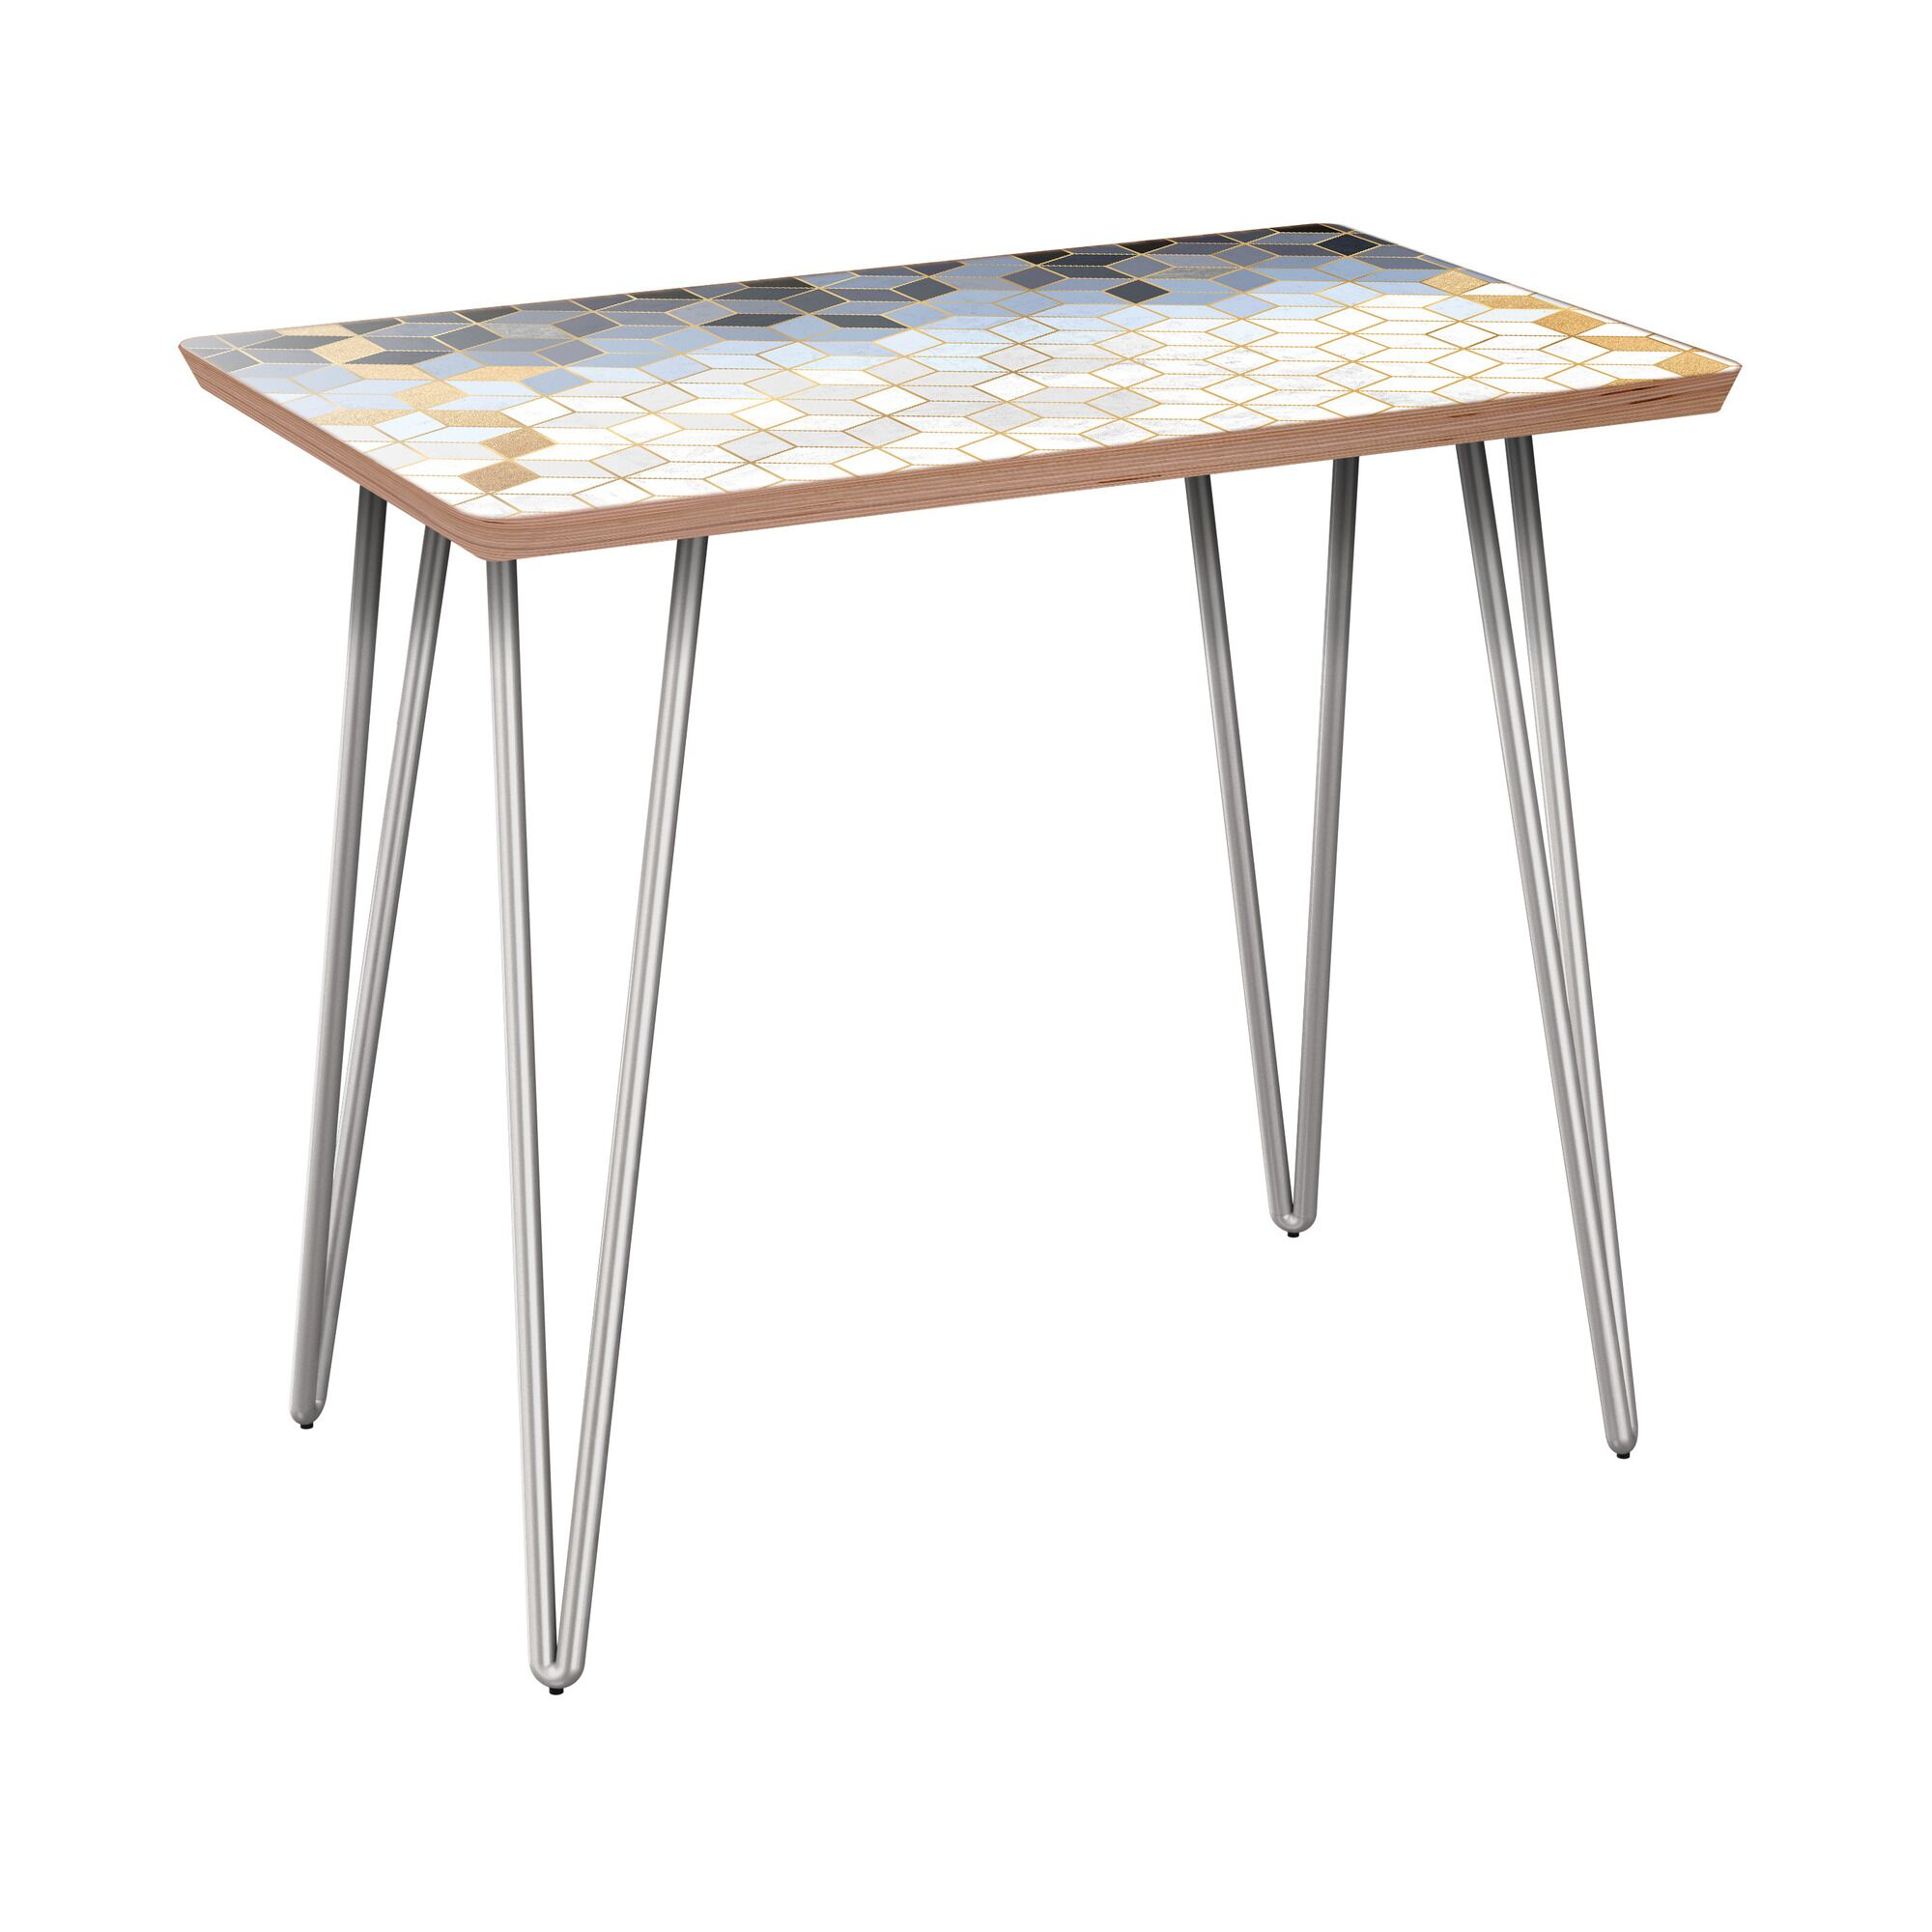 Ruck End Table Table Base Color: Chrome, Table Top Color: Walnut